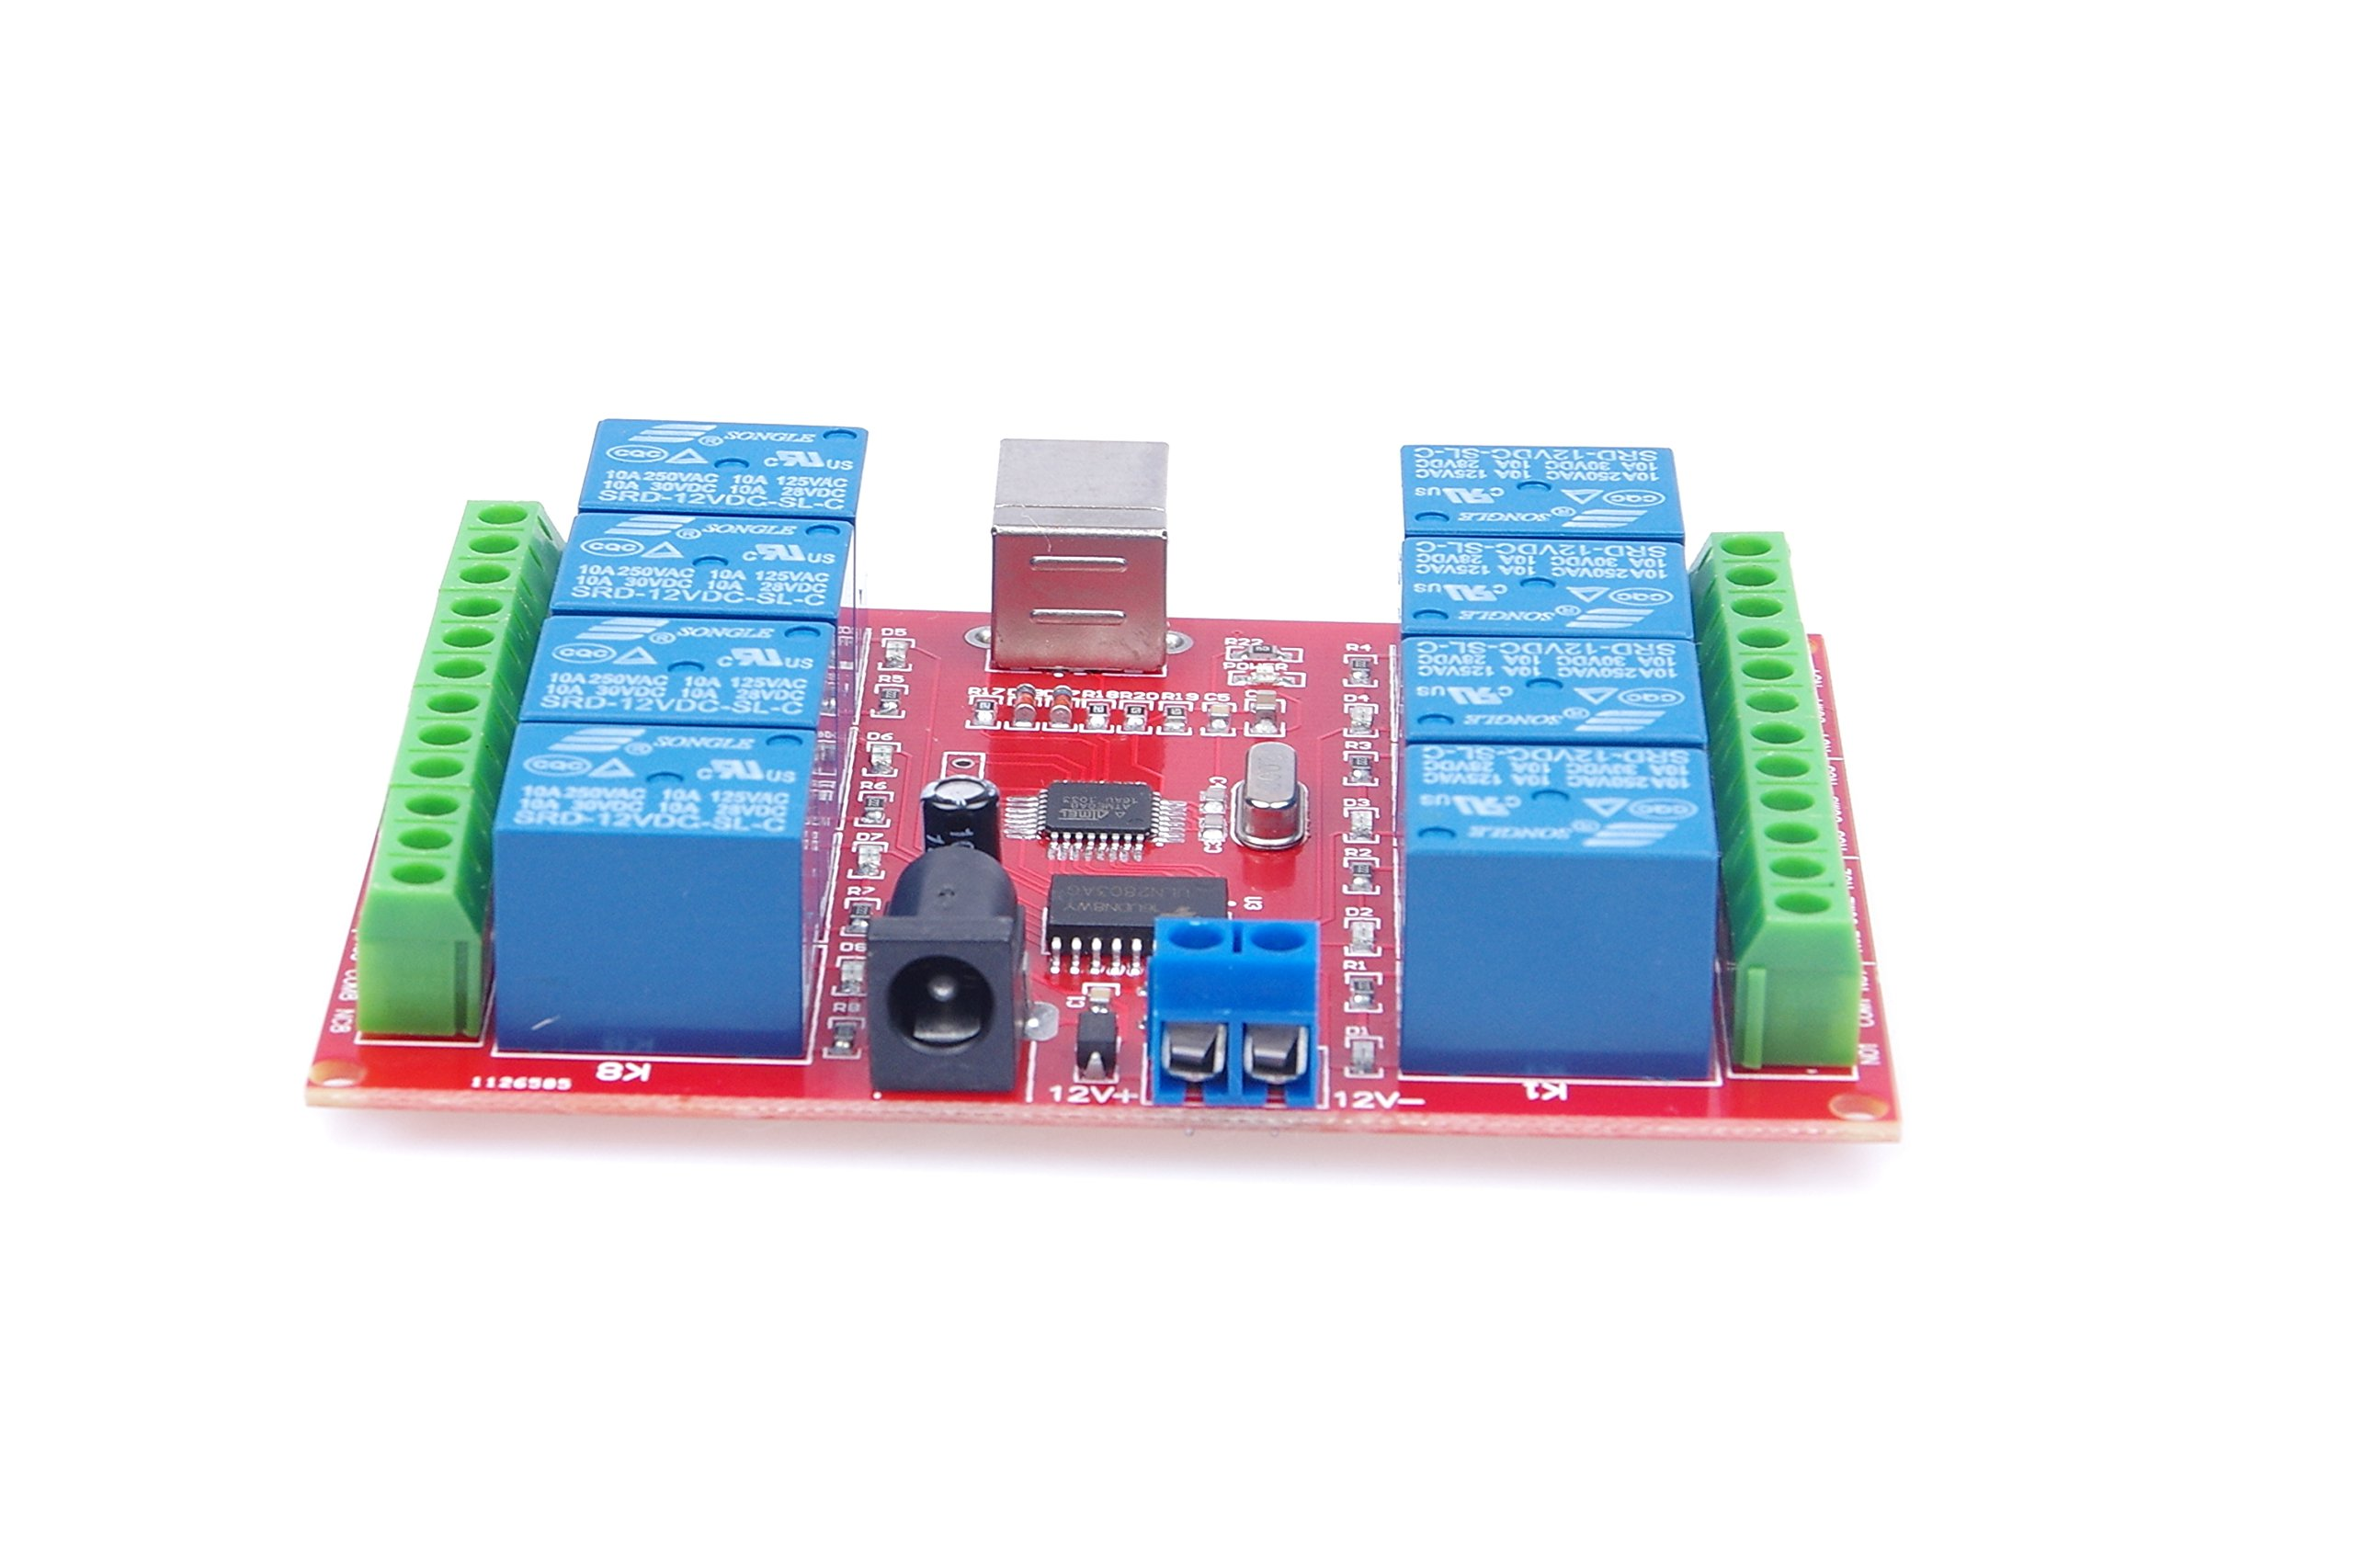 KNACRO 12v 8 Channel USB Relay Module Programmable Computer Control